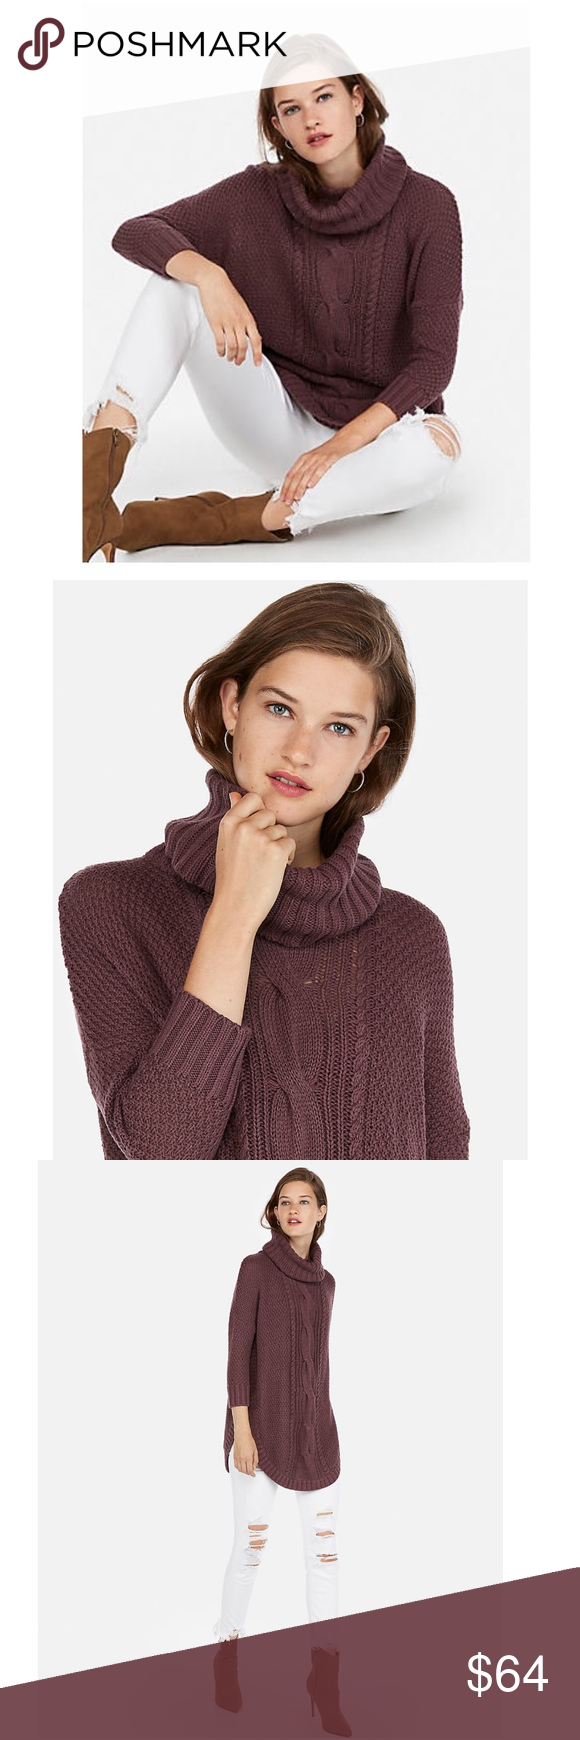 Cowl Neck Cable Knit Pullover Circle Hem Sweater Nwt Knitted Pullover Clothes Design Hem Sweater